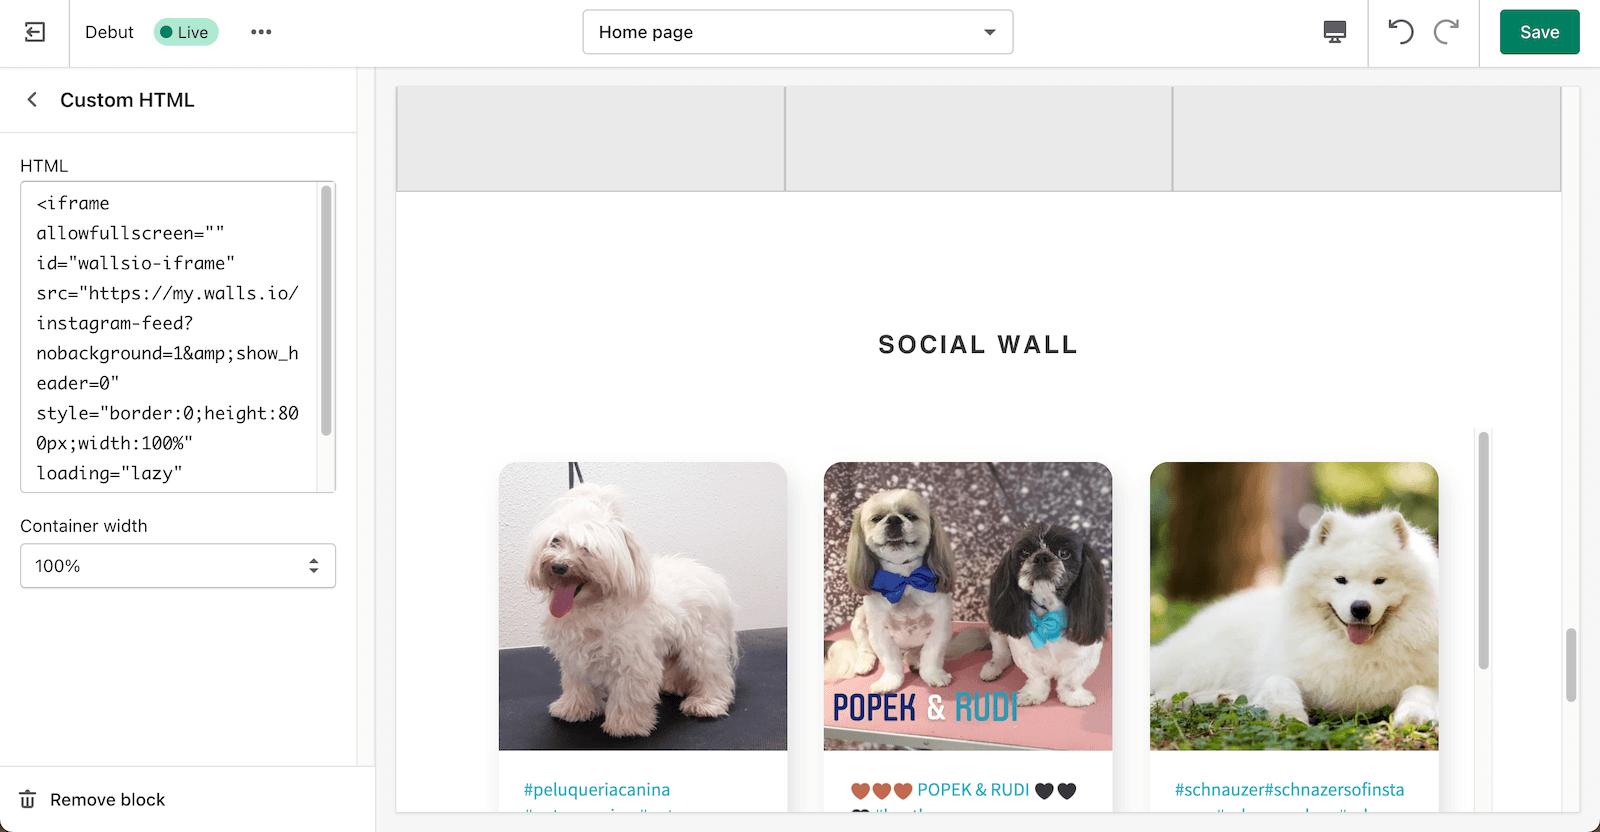 Screenshot showing the same page created with Shopify with the iframe code added in an HTML section on the left and the social wall full of dog pics embedded in the page preview.